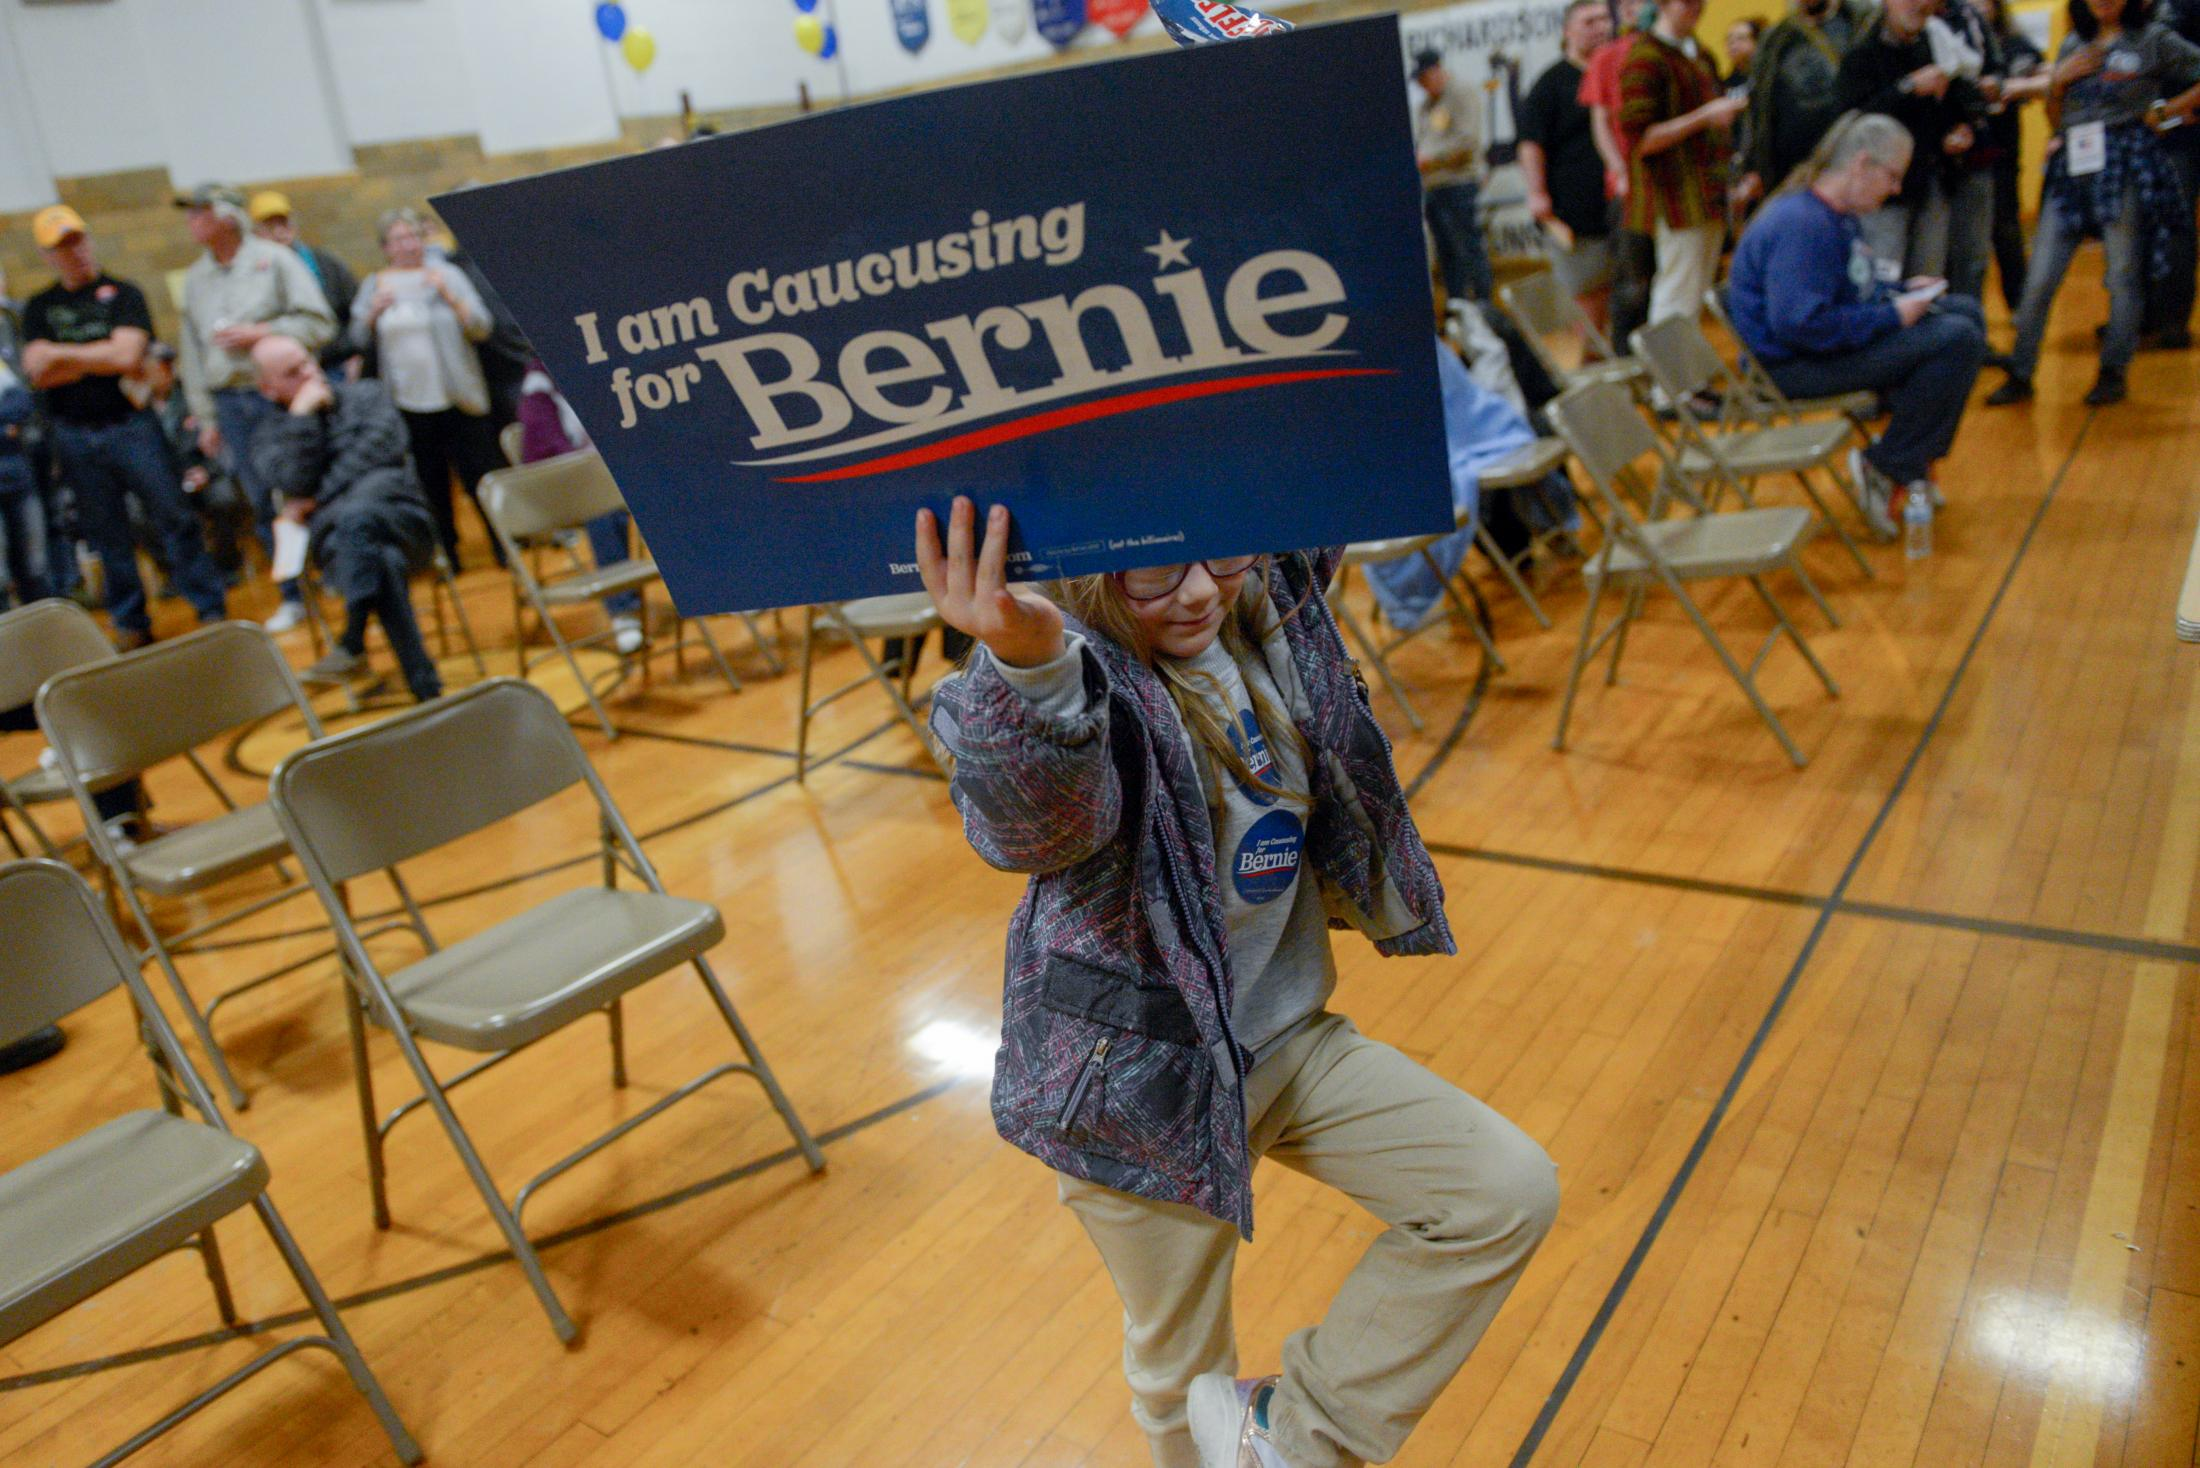 A child holding a Bernie Sanders campaign sign dances by the observer table at Richardson Elementary School for the Fifth Precinct caucus on Monday, February 3, 2020, in Fort Madison, Iowa. The Sanders campaign received four delegates from the district.